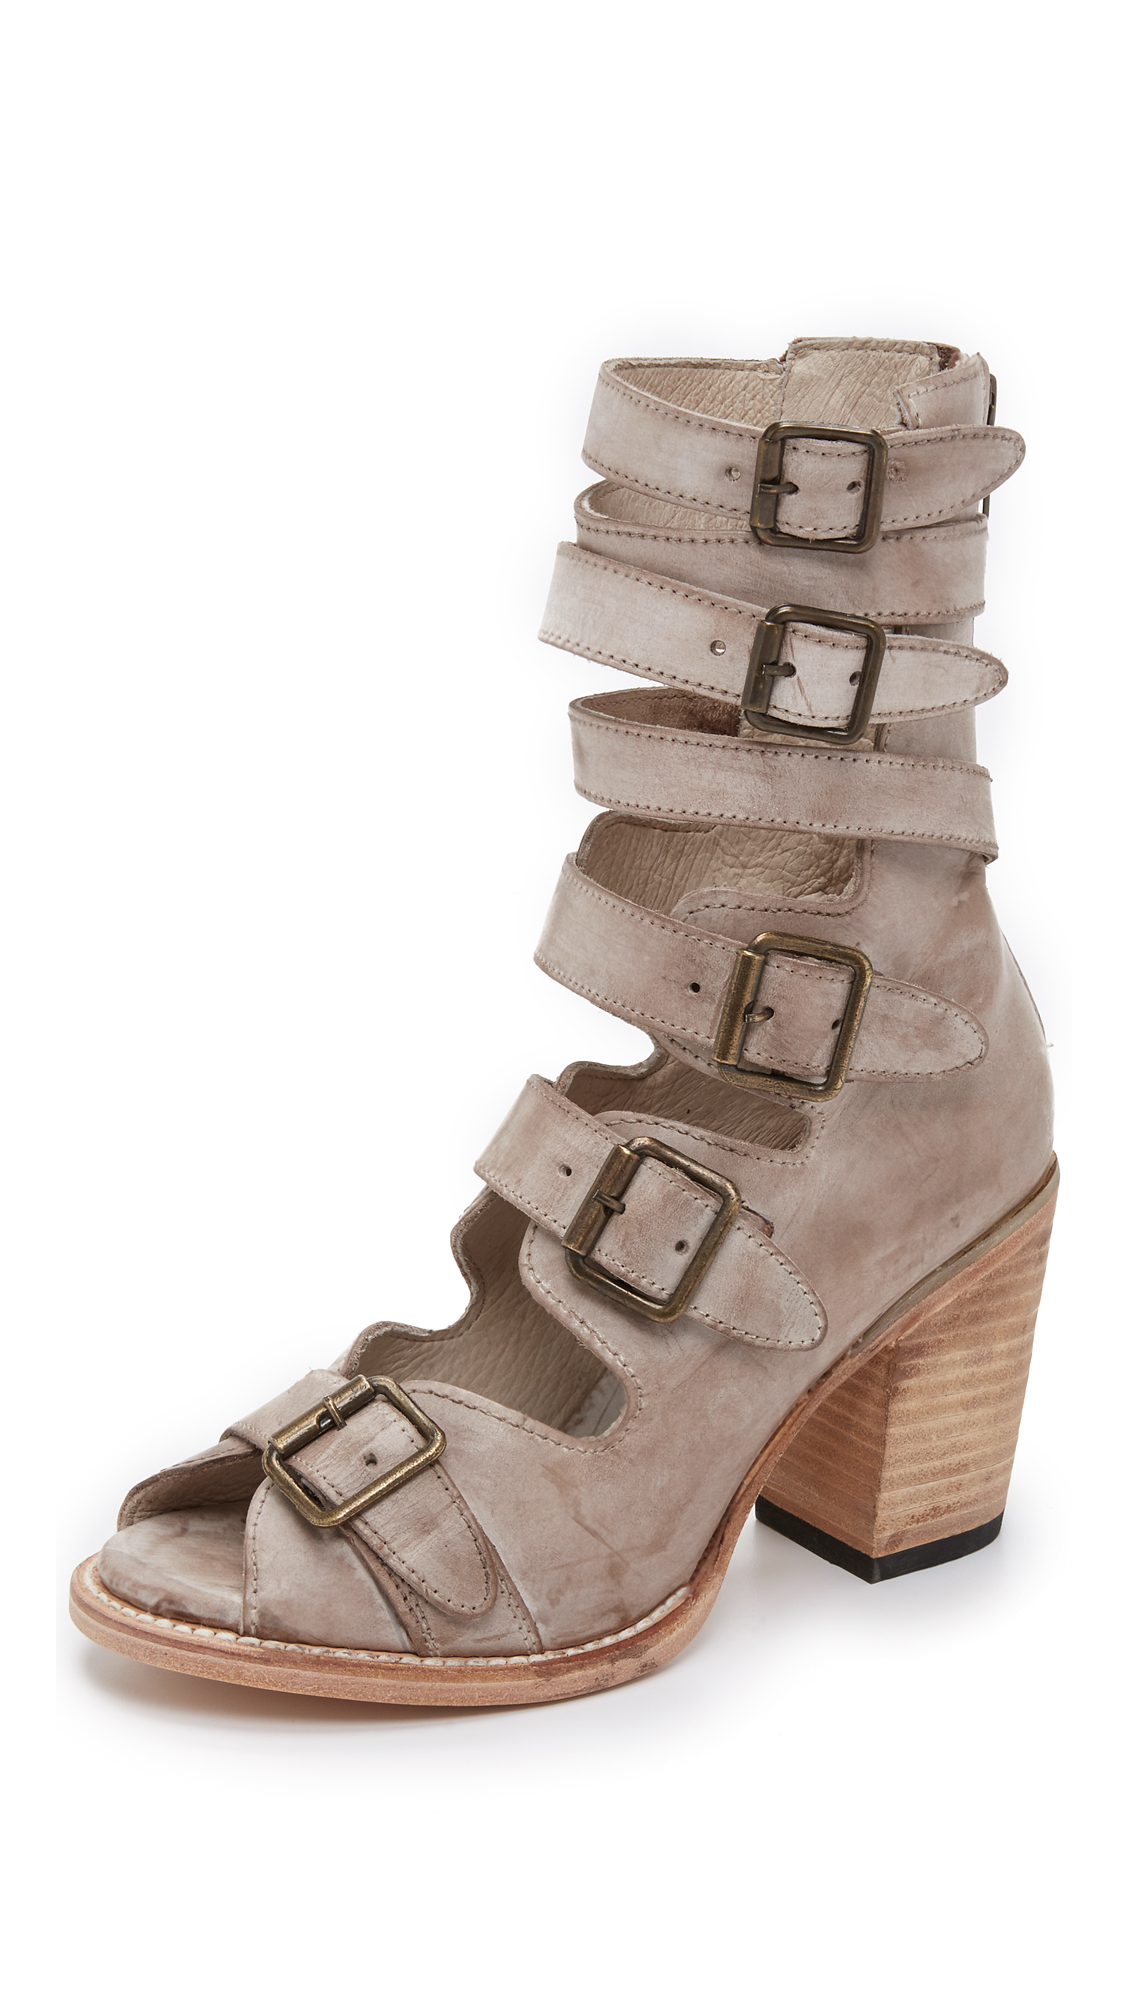 b9497fe35a8 Lyst - Freebird by Steven Bond Sandals - Taupe in Gray